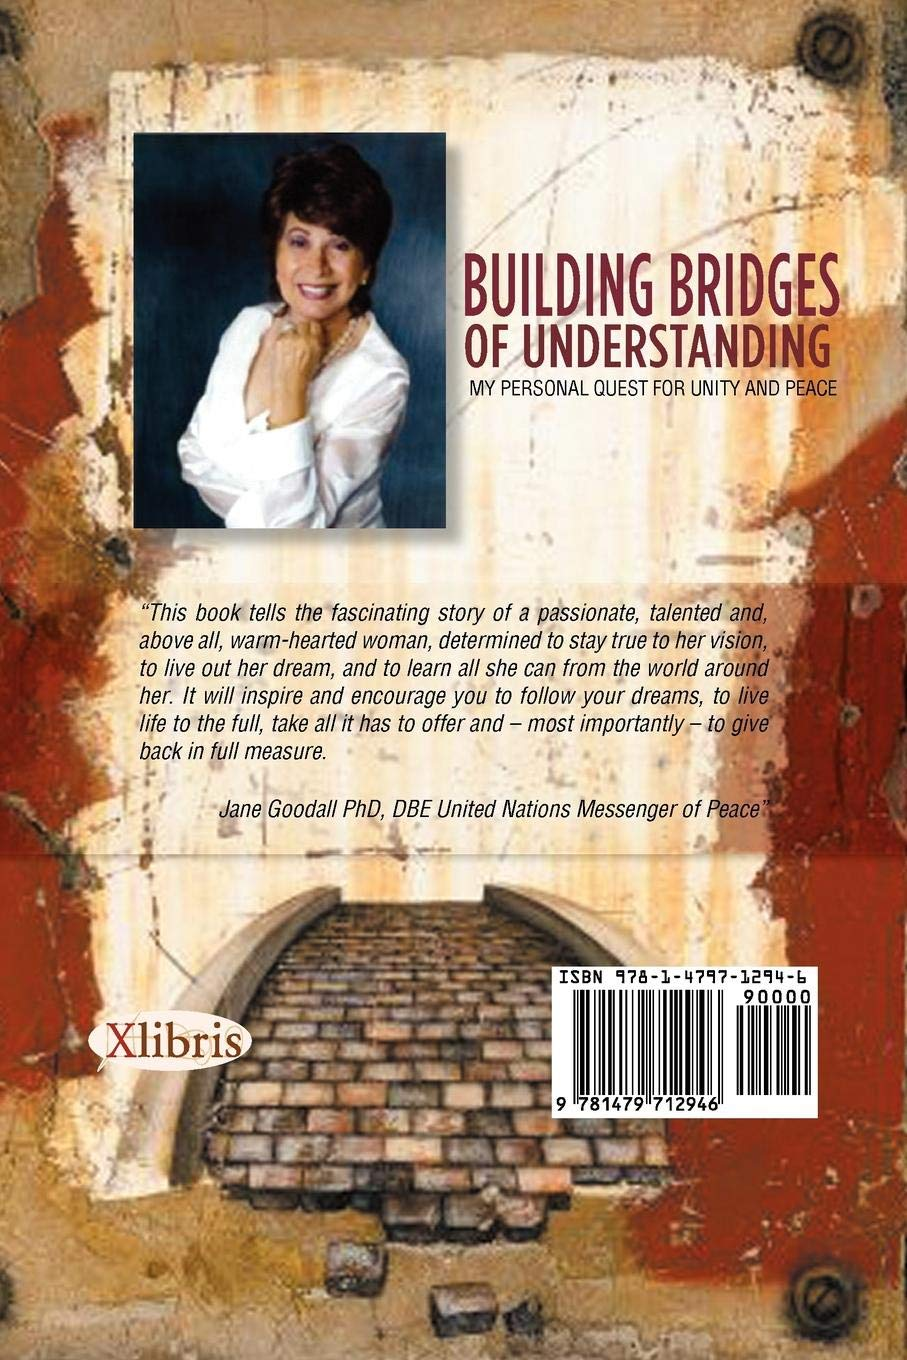 Building Bridges Of Understanding: My Personal Quest For Unity and Peace